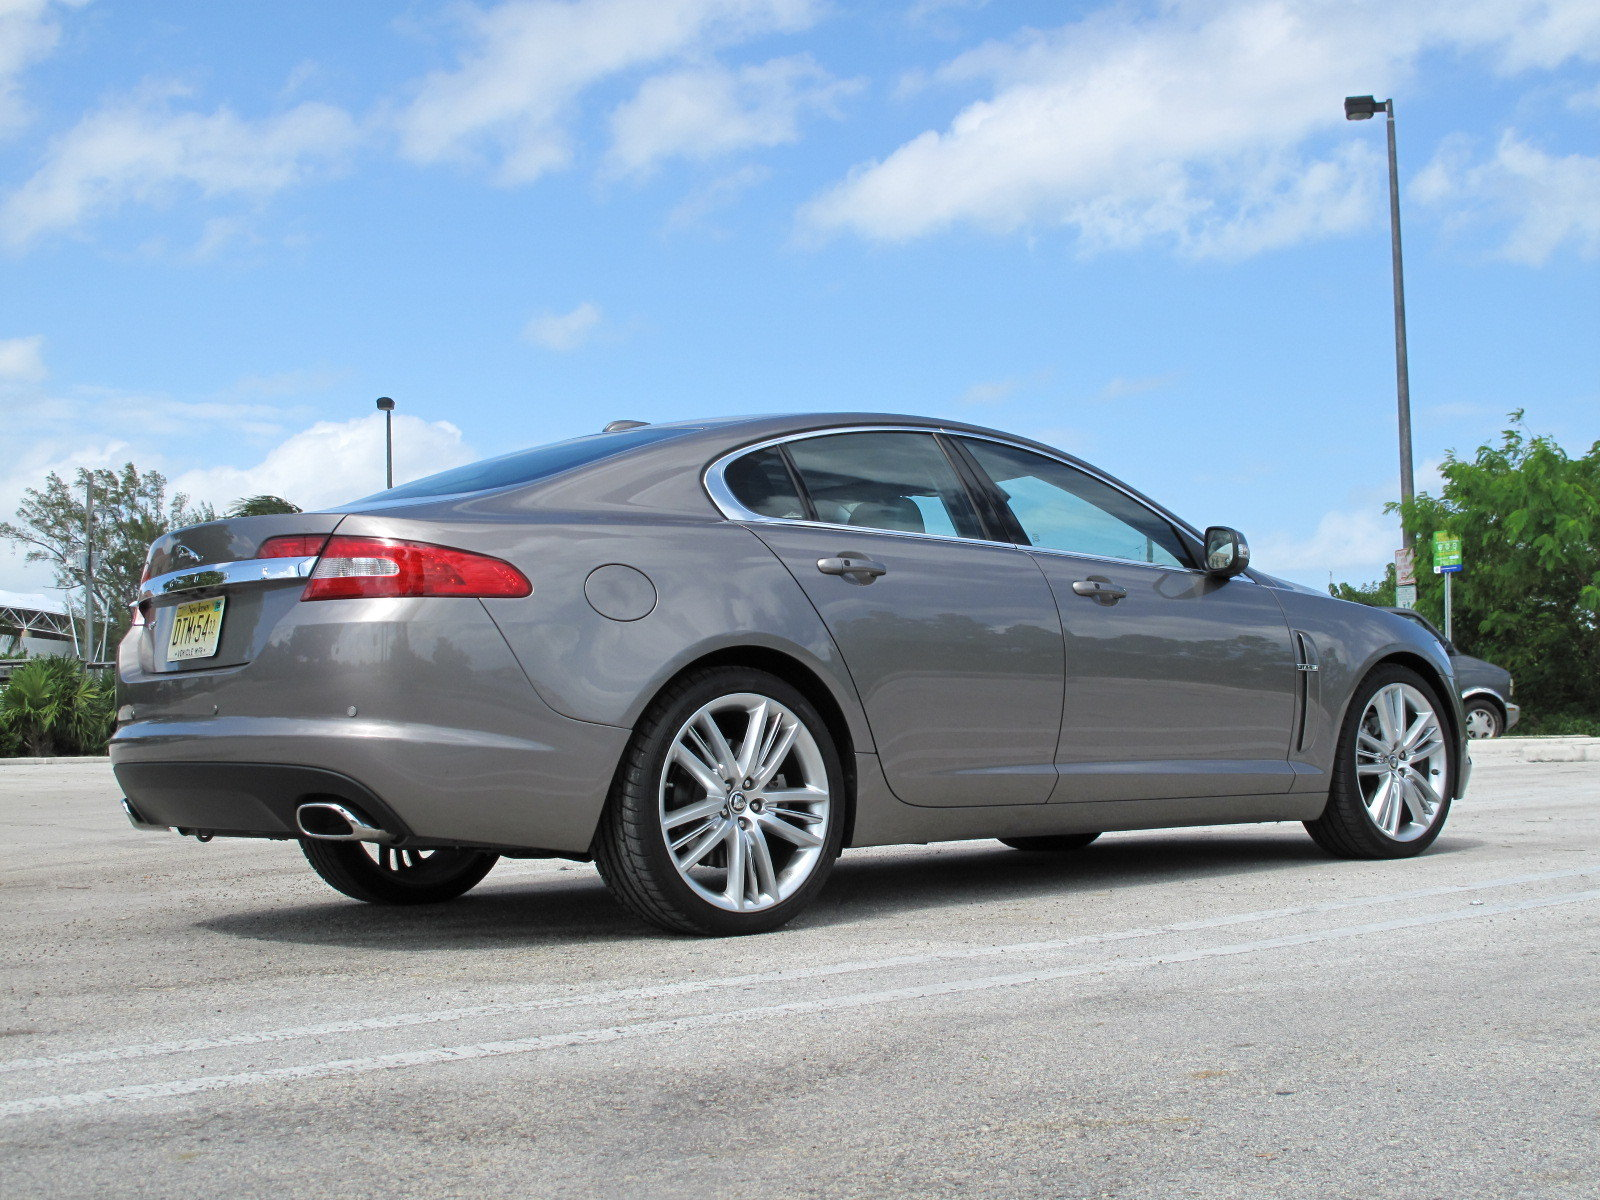 jaguar xf 2009 - photo #47